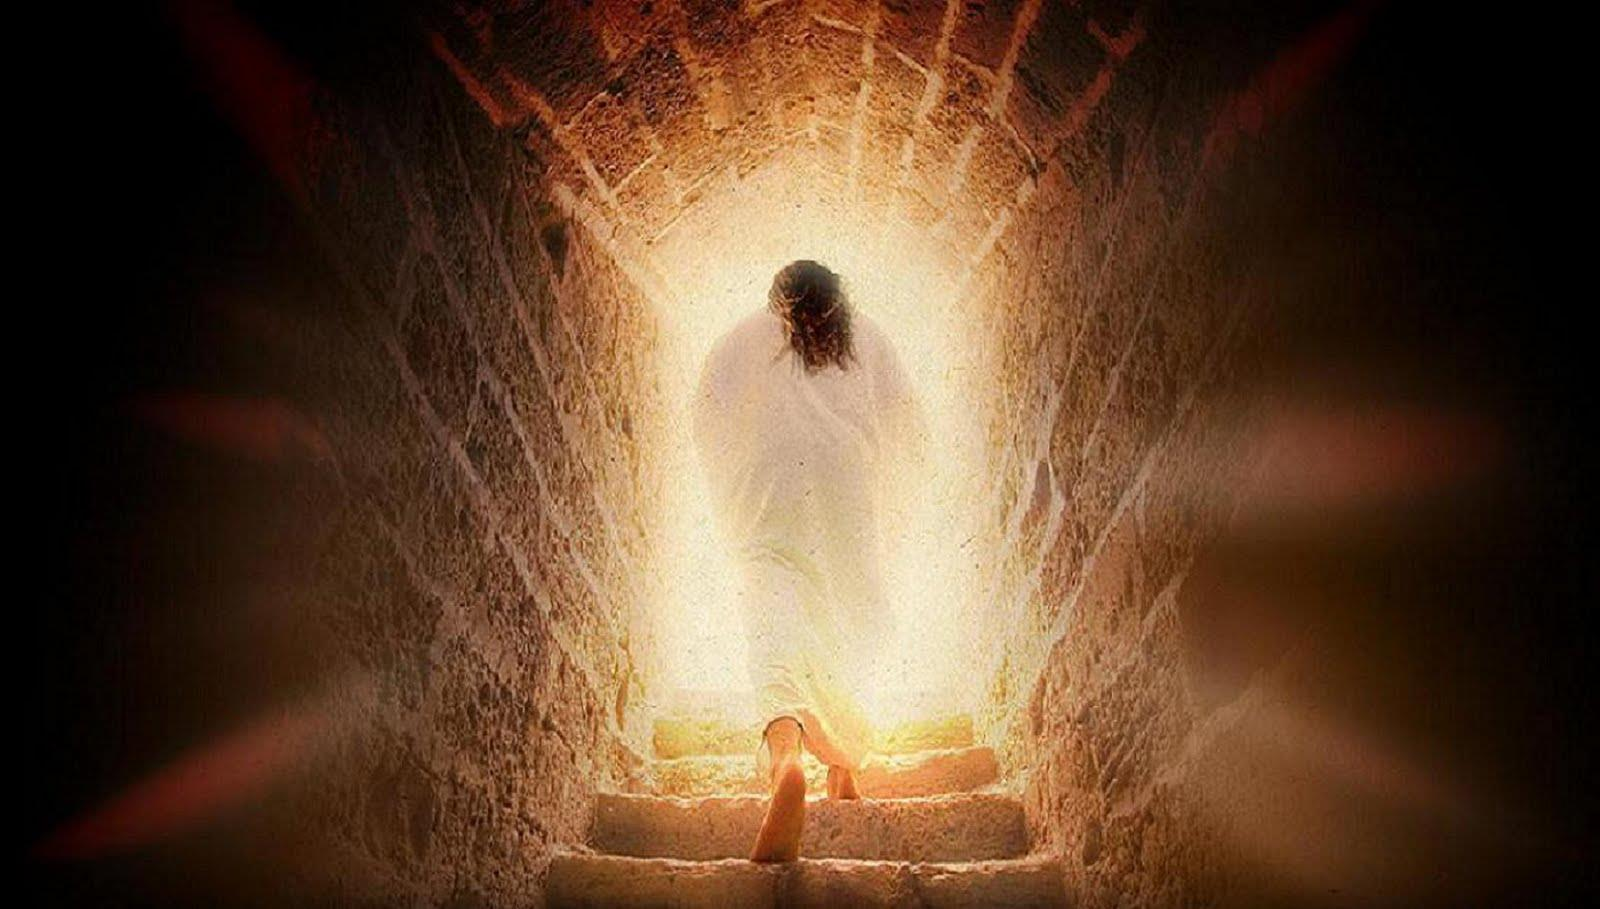 http://heritage-wordpress-test.s3.amazonaws.com/wp-content/uploads/2015/02/Jesus-Walking-Out-of-the-Tomb.jpg